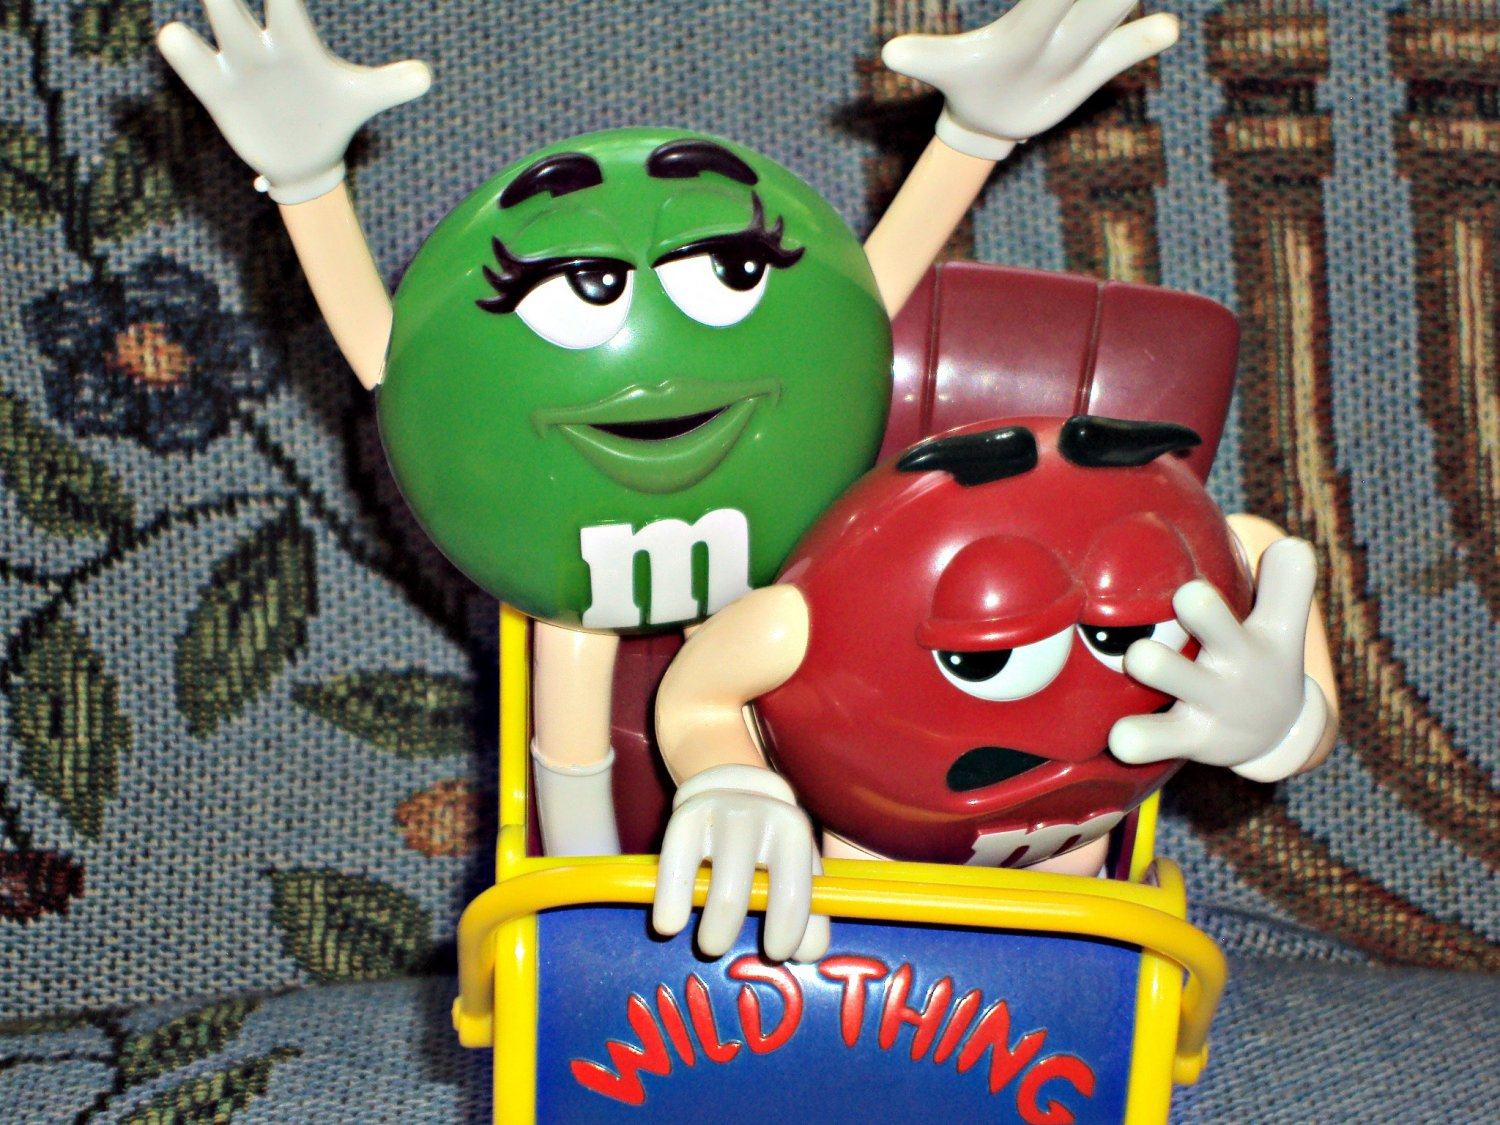 M & M's Mars Candy Wild Thing Dispenser Roller Coaster Green Girl & Red Boy Characters